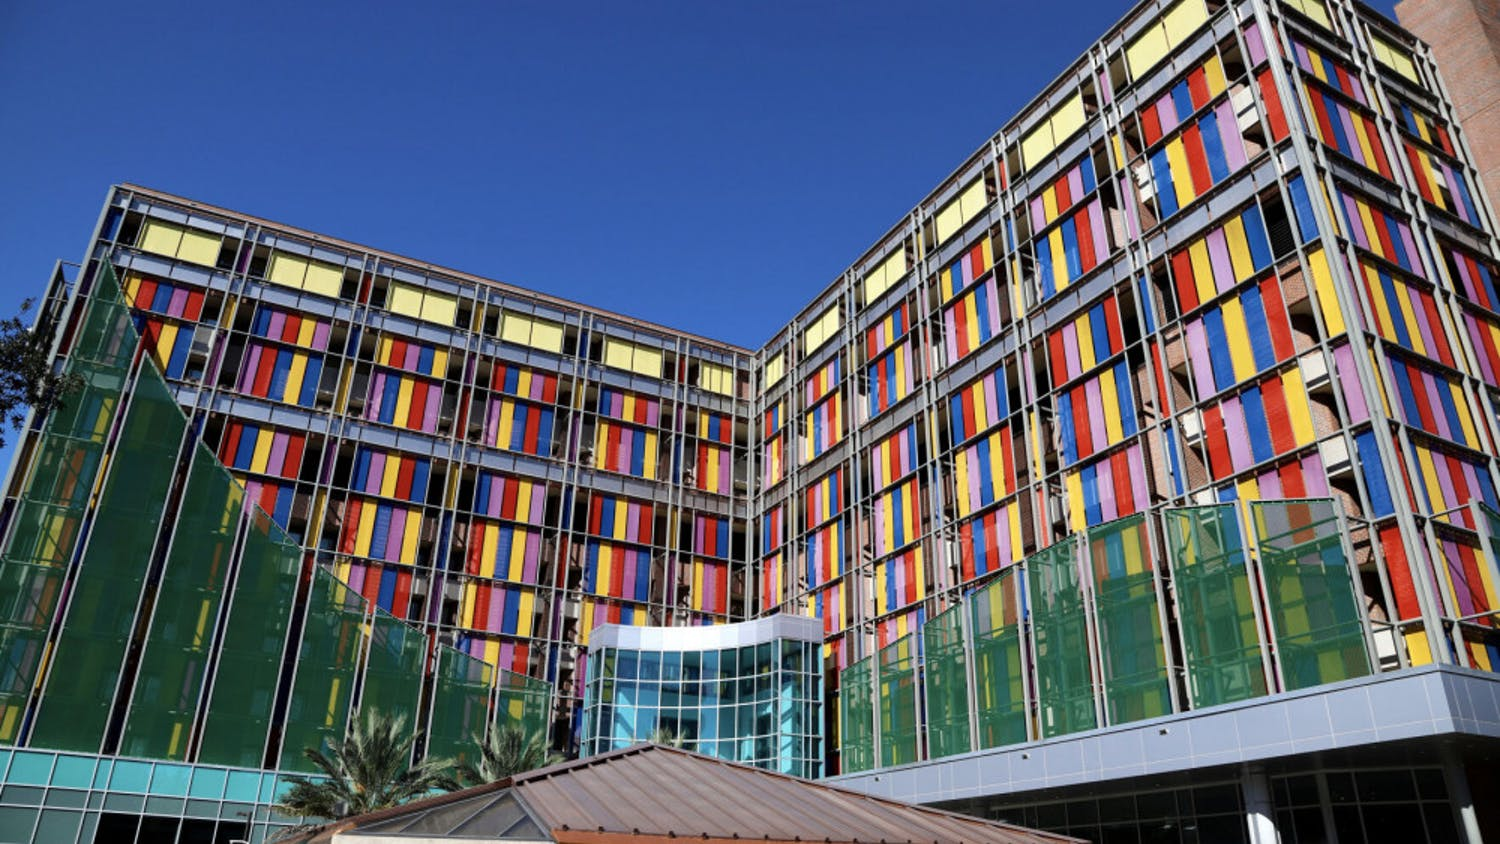 The multi-colored glass of the UF Health Shands Children's Hospital shines as the sun reflects off the panes on September 25, 2020. The pediatric staff provide care in more than 20 specialities including pediatric hematology-oncology.